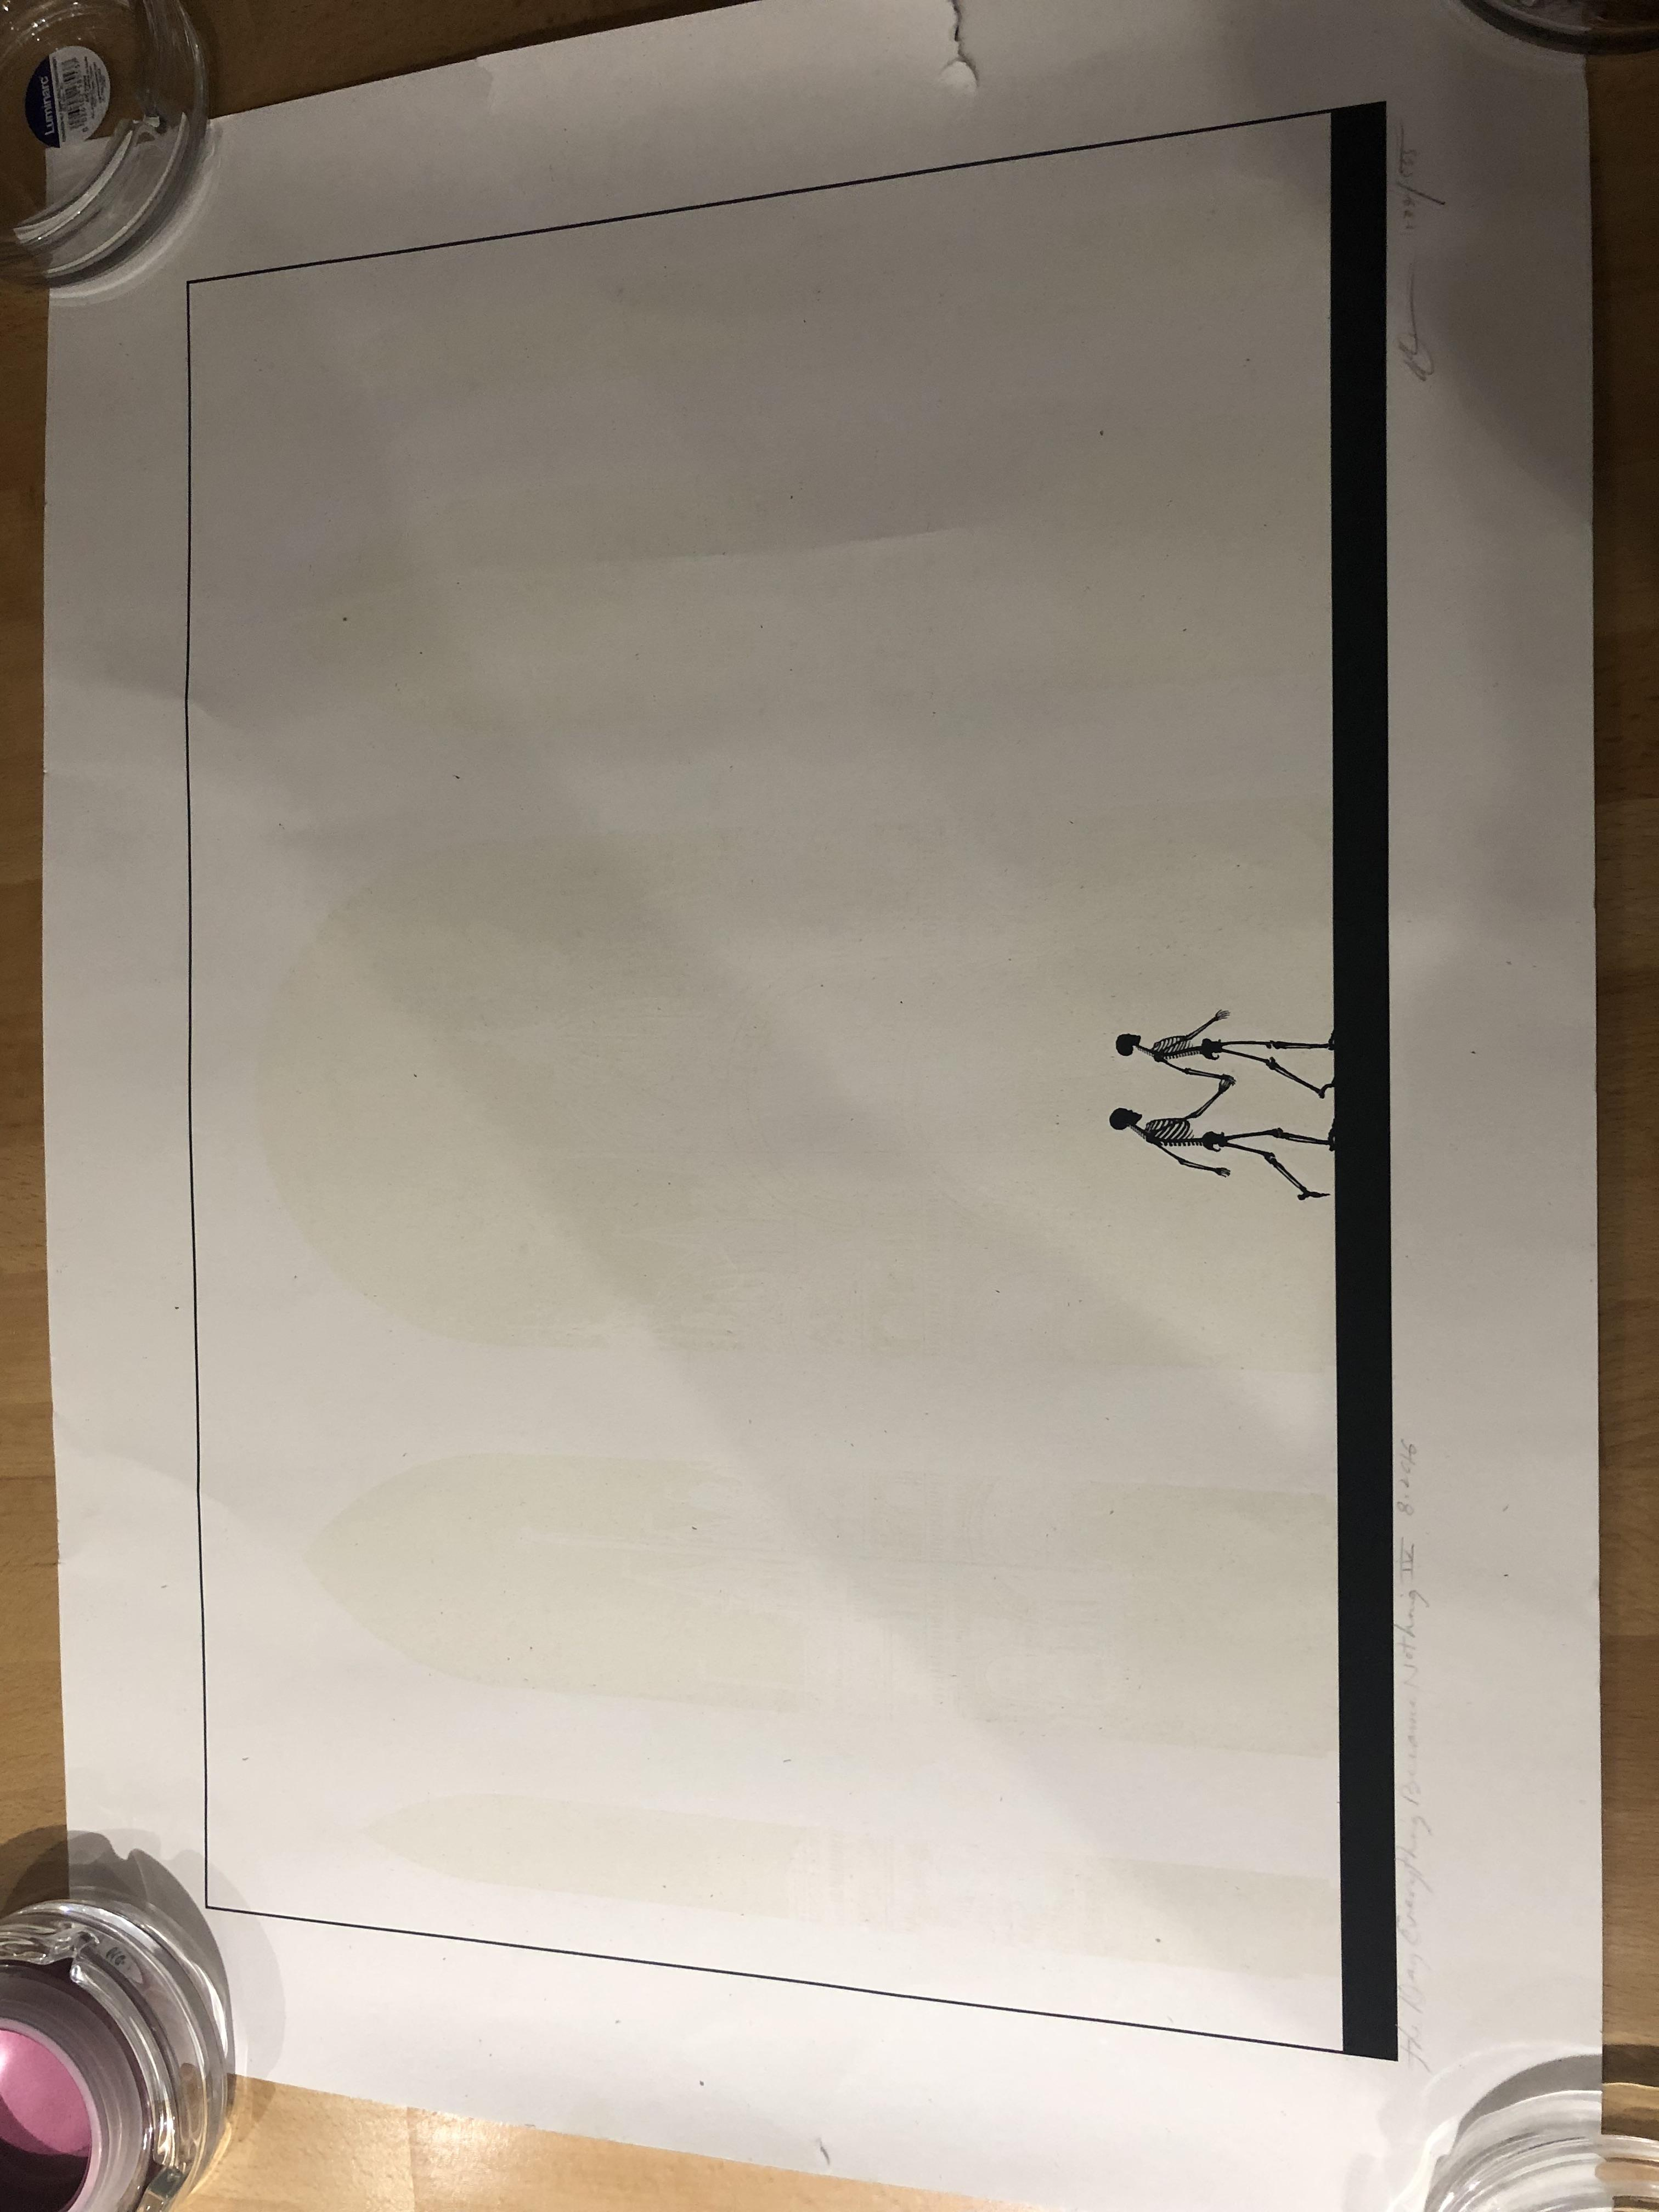 Lot 35 - Dan Mcarthy signed print The Way Everything Becomes Nothing IV